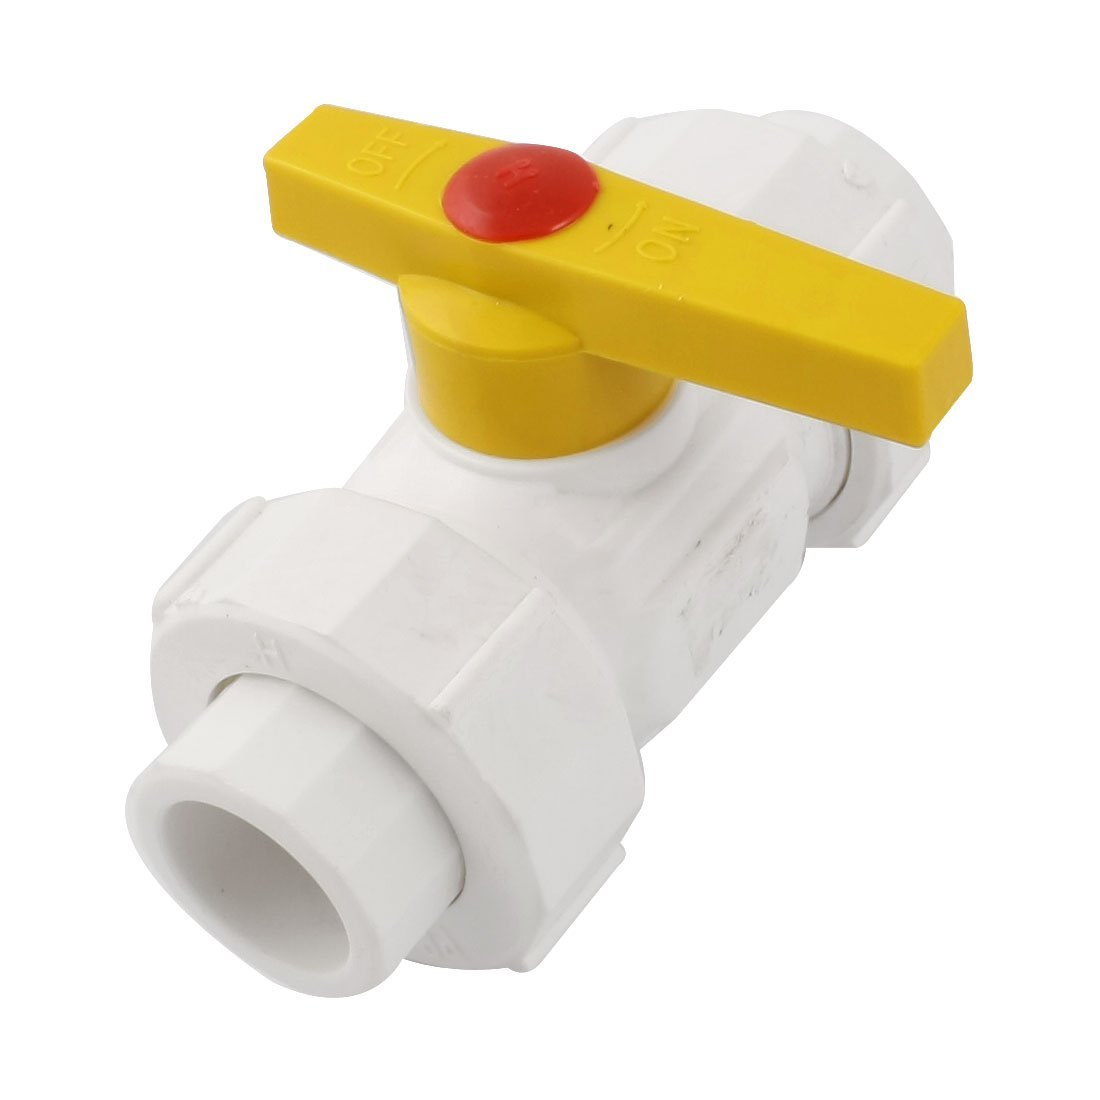 Water Supply 25mm to 25mm Ends 1/4 Turn PPR Ball Valve White Yellow DealMux DLM-B00PZX6N3K